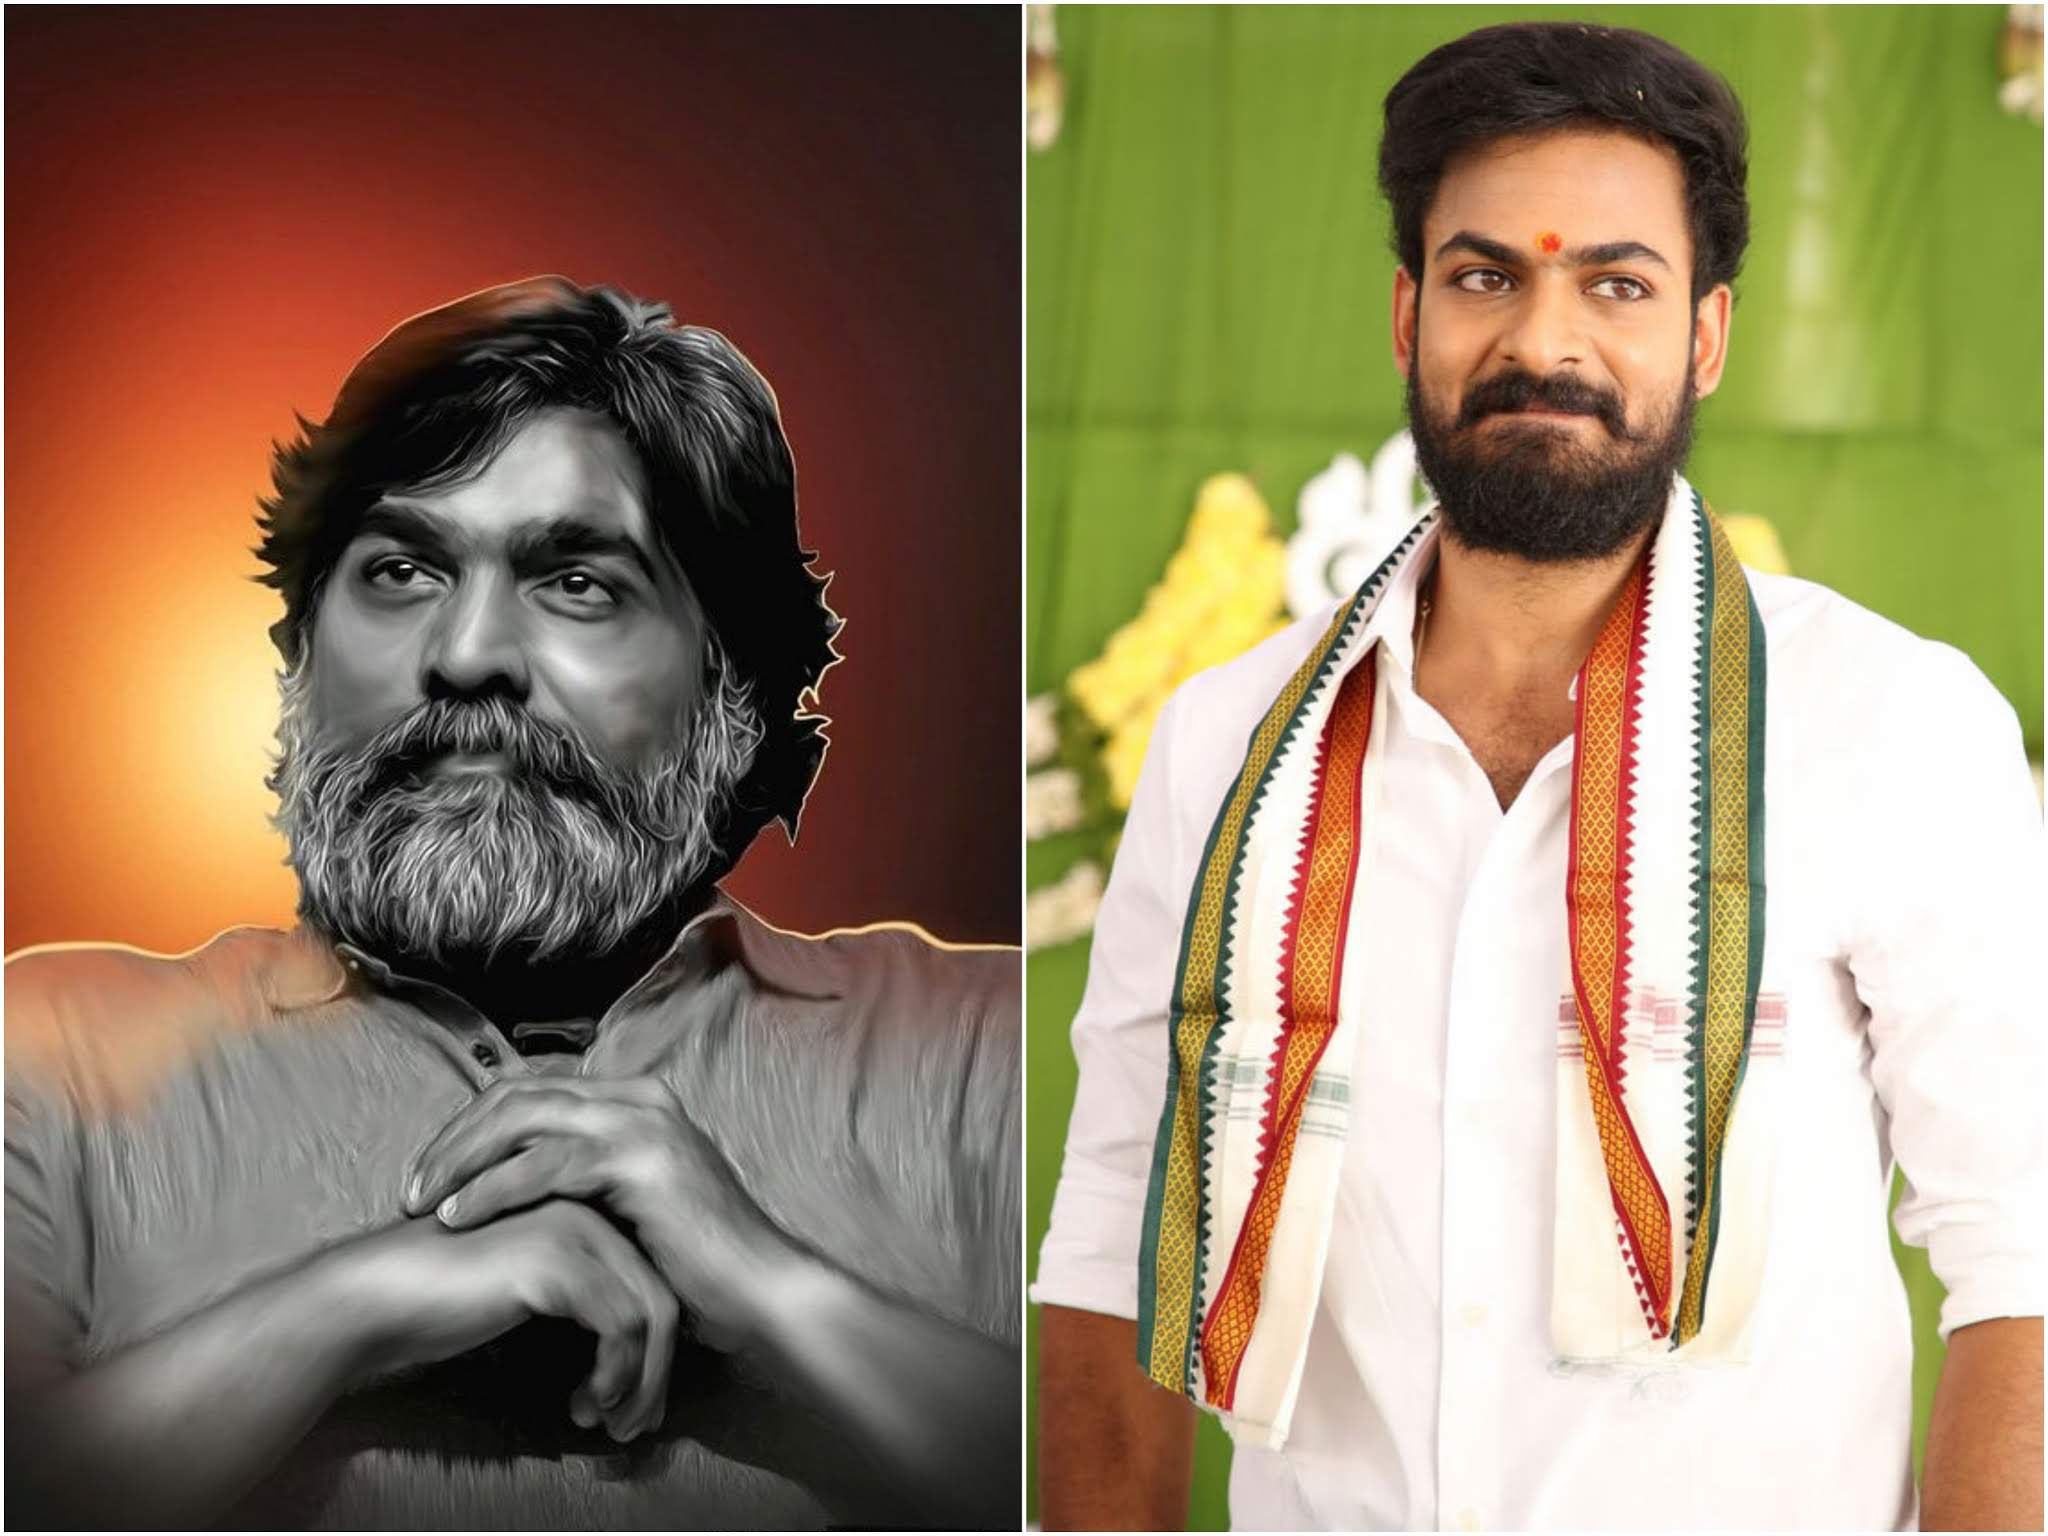 Vijay Sethupathi in Vaisshnav Tej's debut film